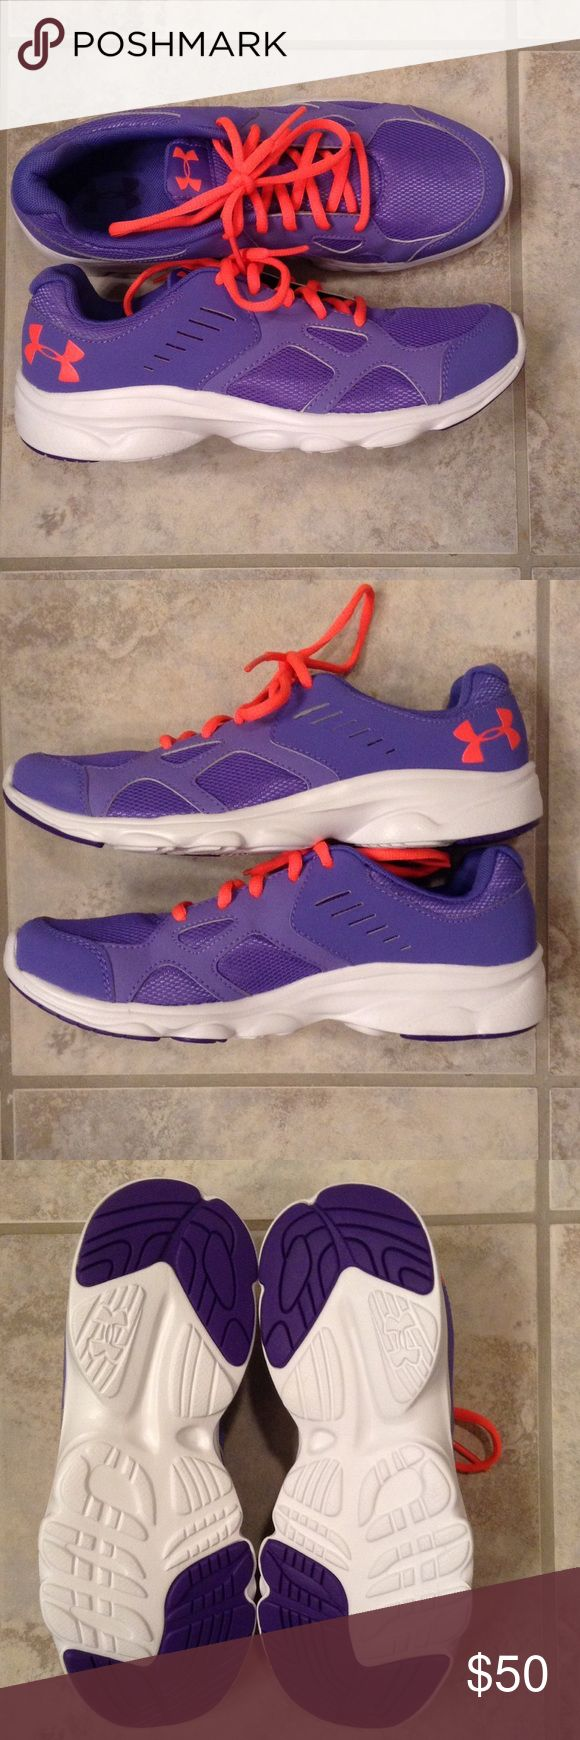 Brand new! 6.5Y Under Armour Purple Tennis Shoes Brand new purple and neon orange Under Armour shoes. Never worn, only tried on, but do not have any actual tags. In perfect condition! These are 6.5Y which is a size 8 in women's. Under Armour Shoes